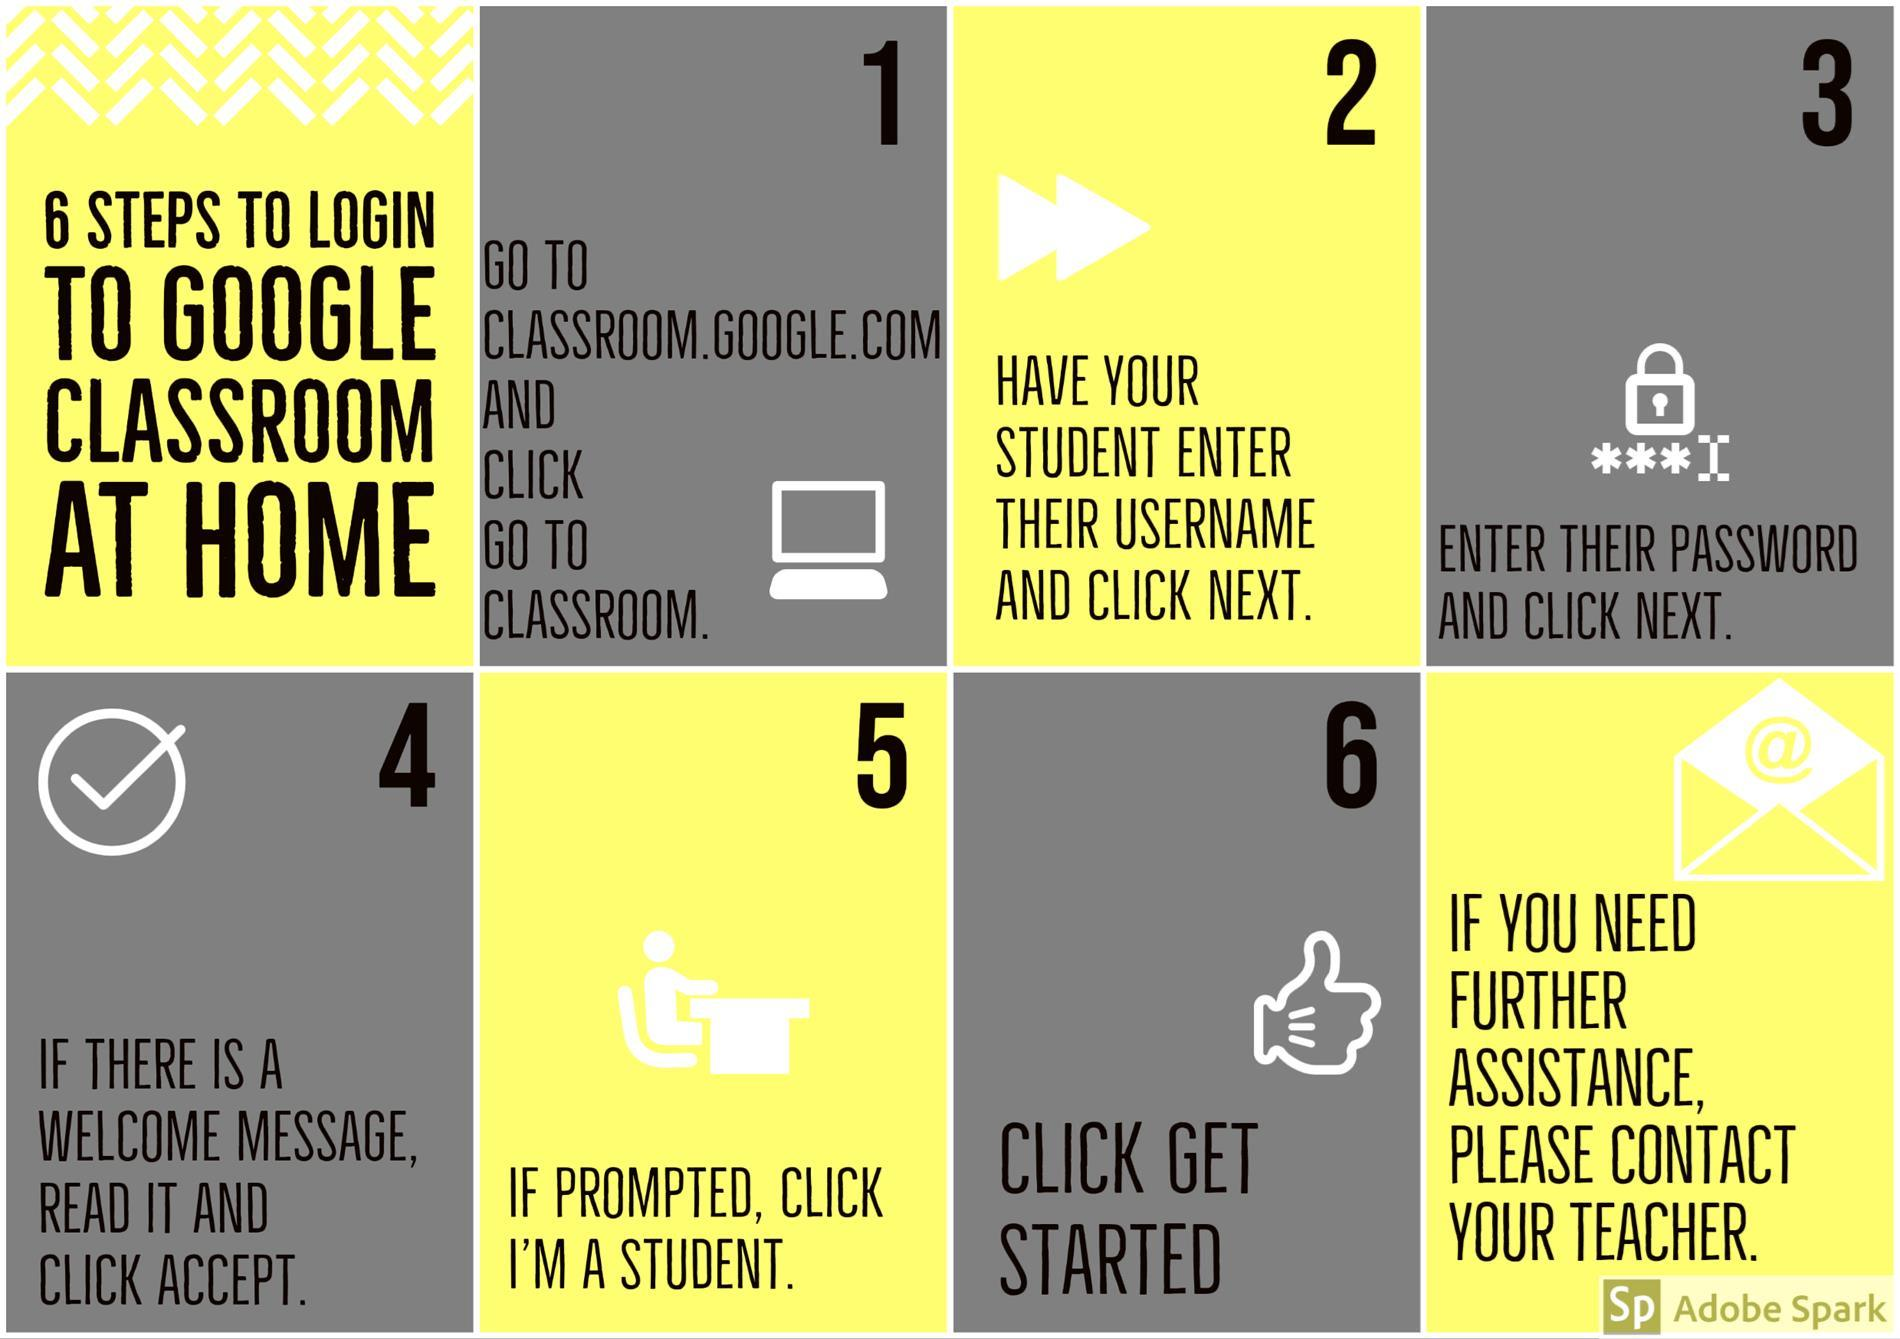 Google Classroom How To Guide